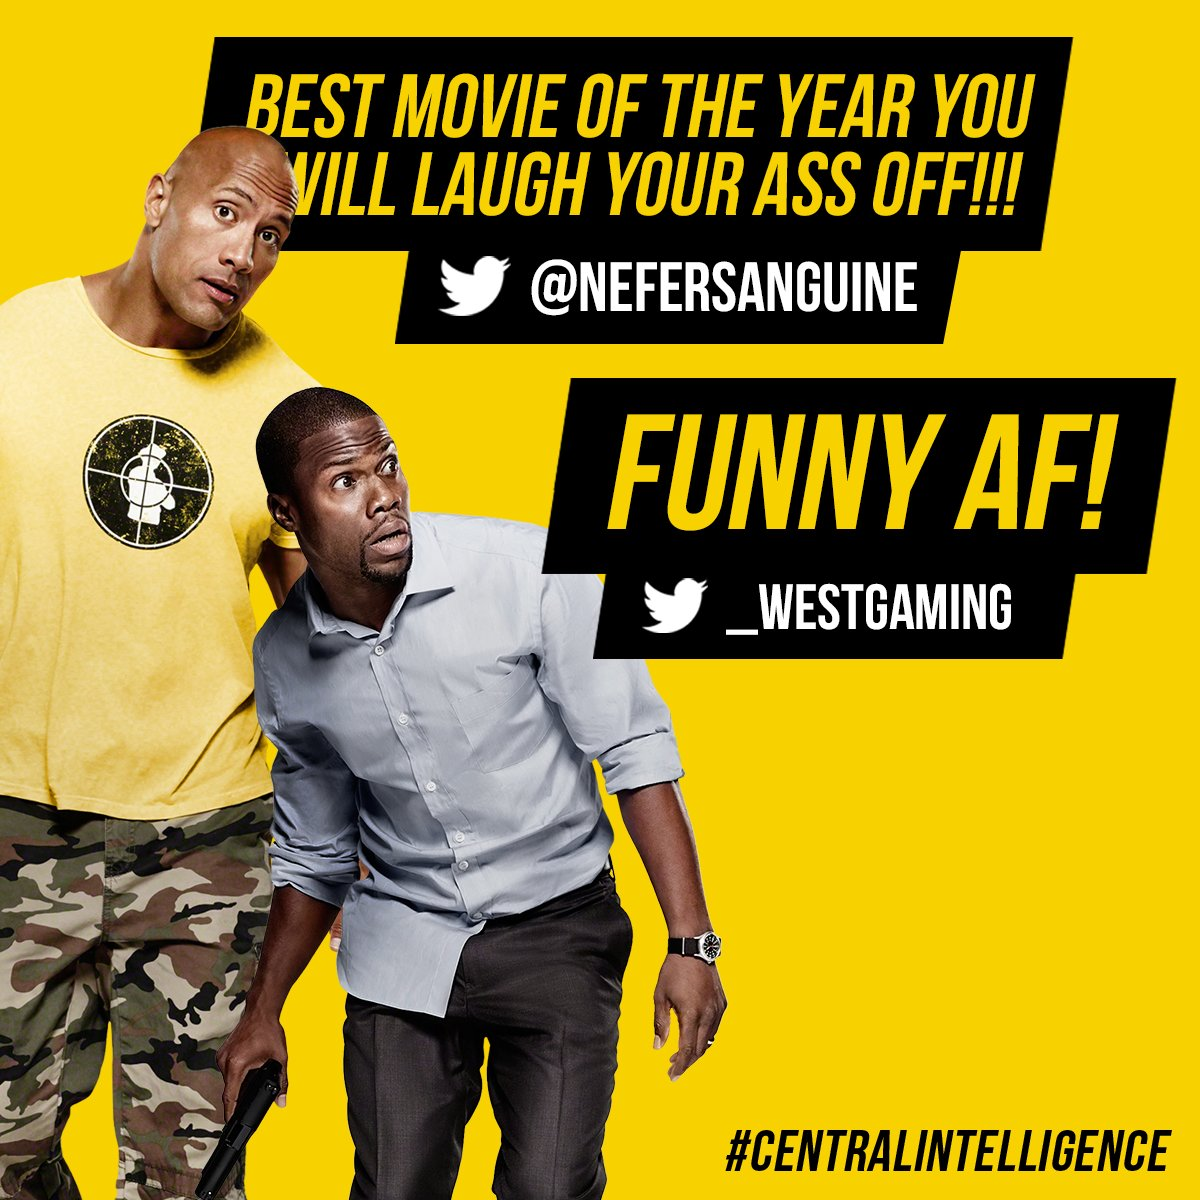 Preview Film Central Intelligence 2016 Edwin Dianto New Kid On The Blog